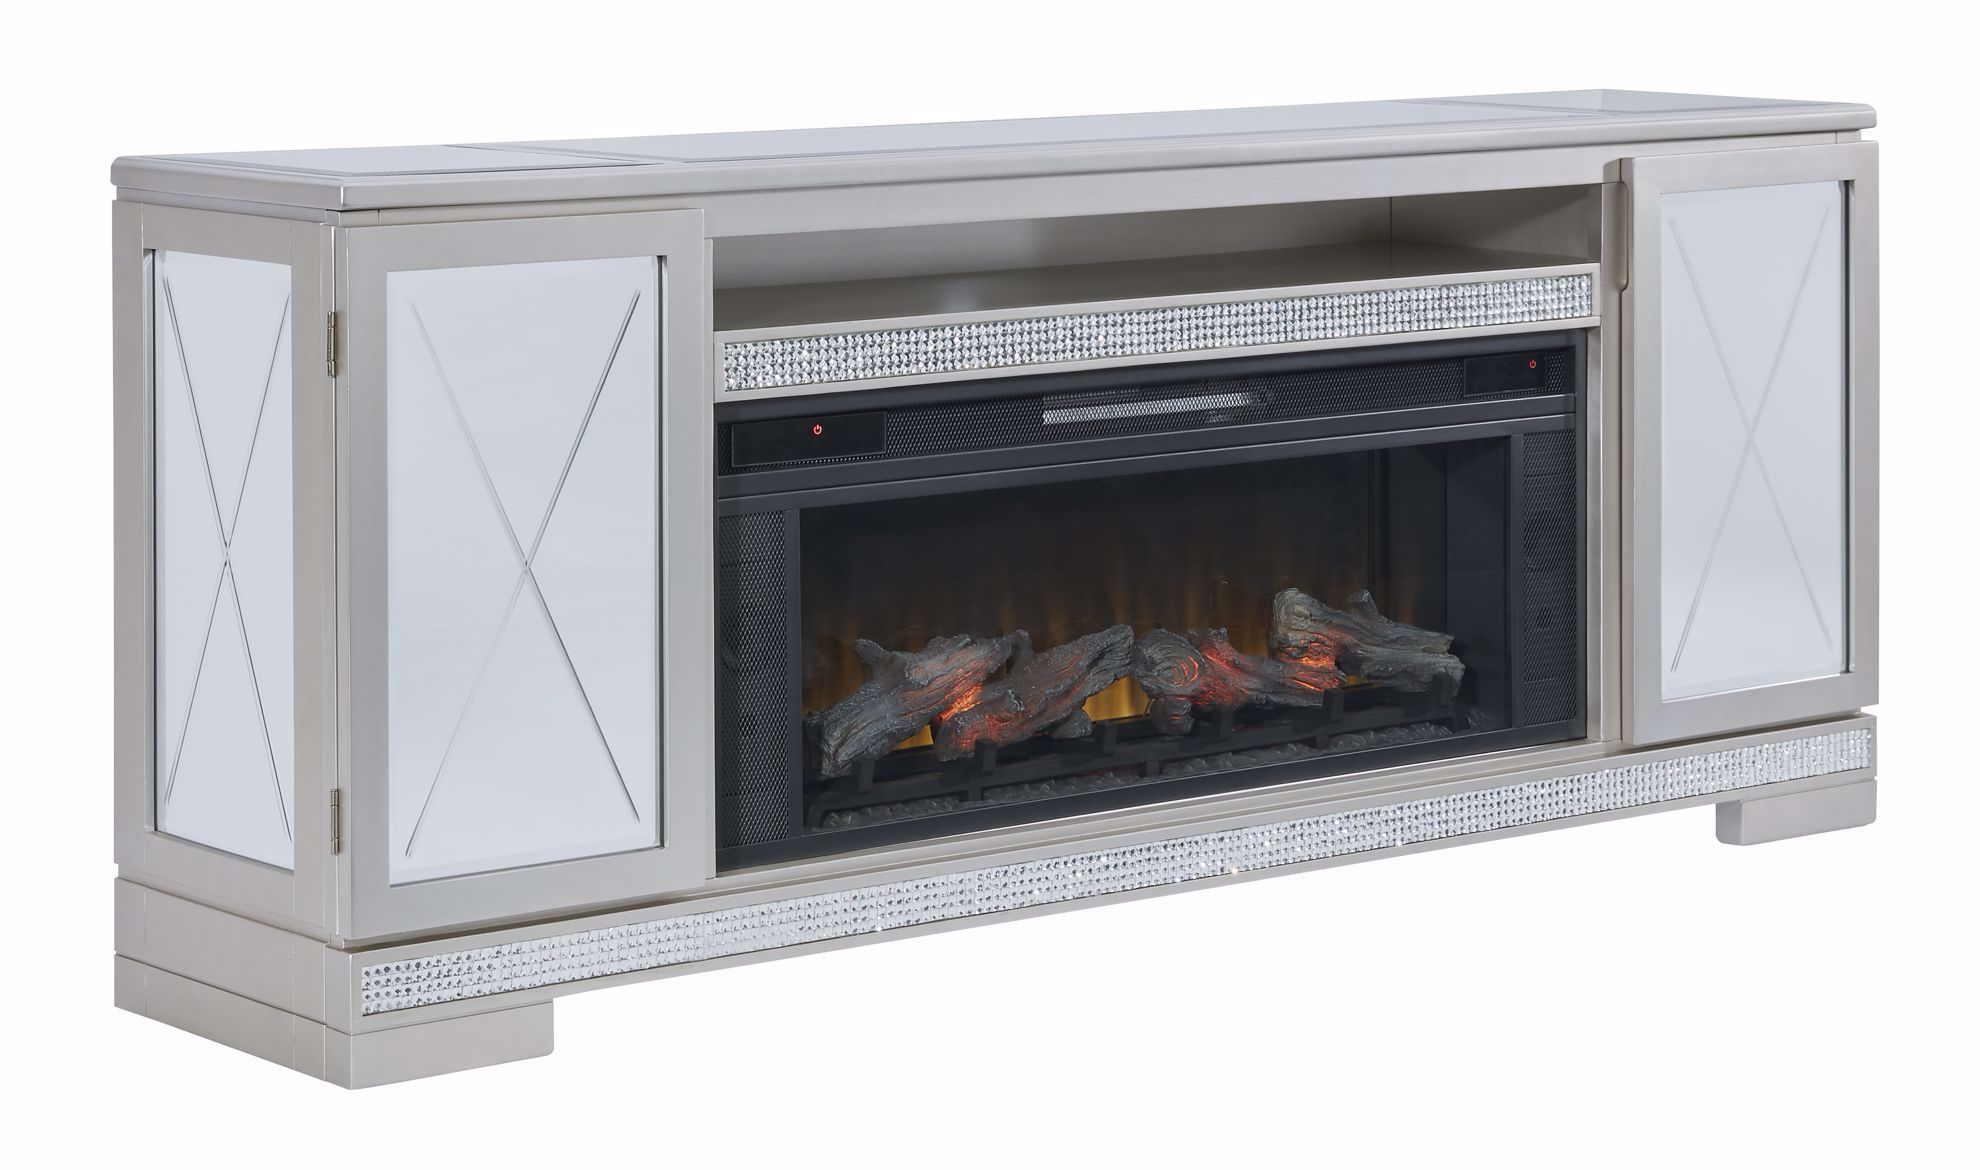 Picture of Flamory TV Stand with Fireplace Insert